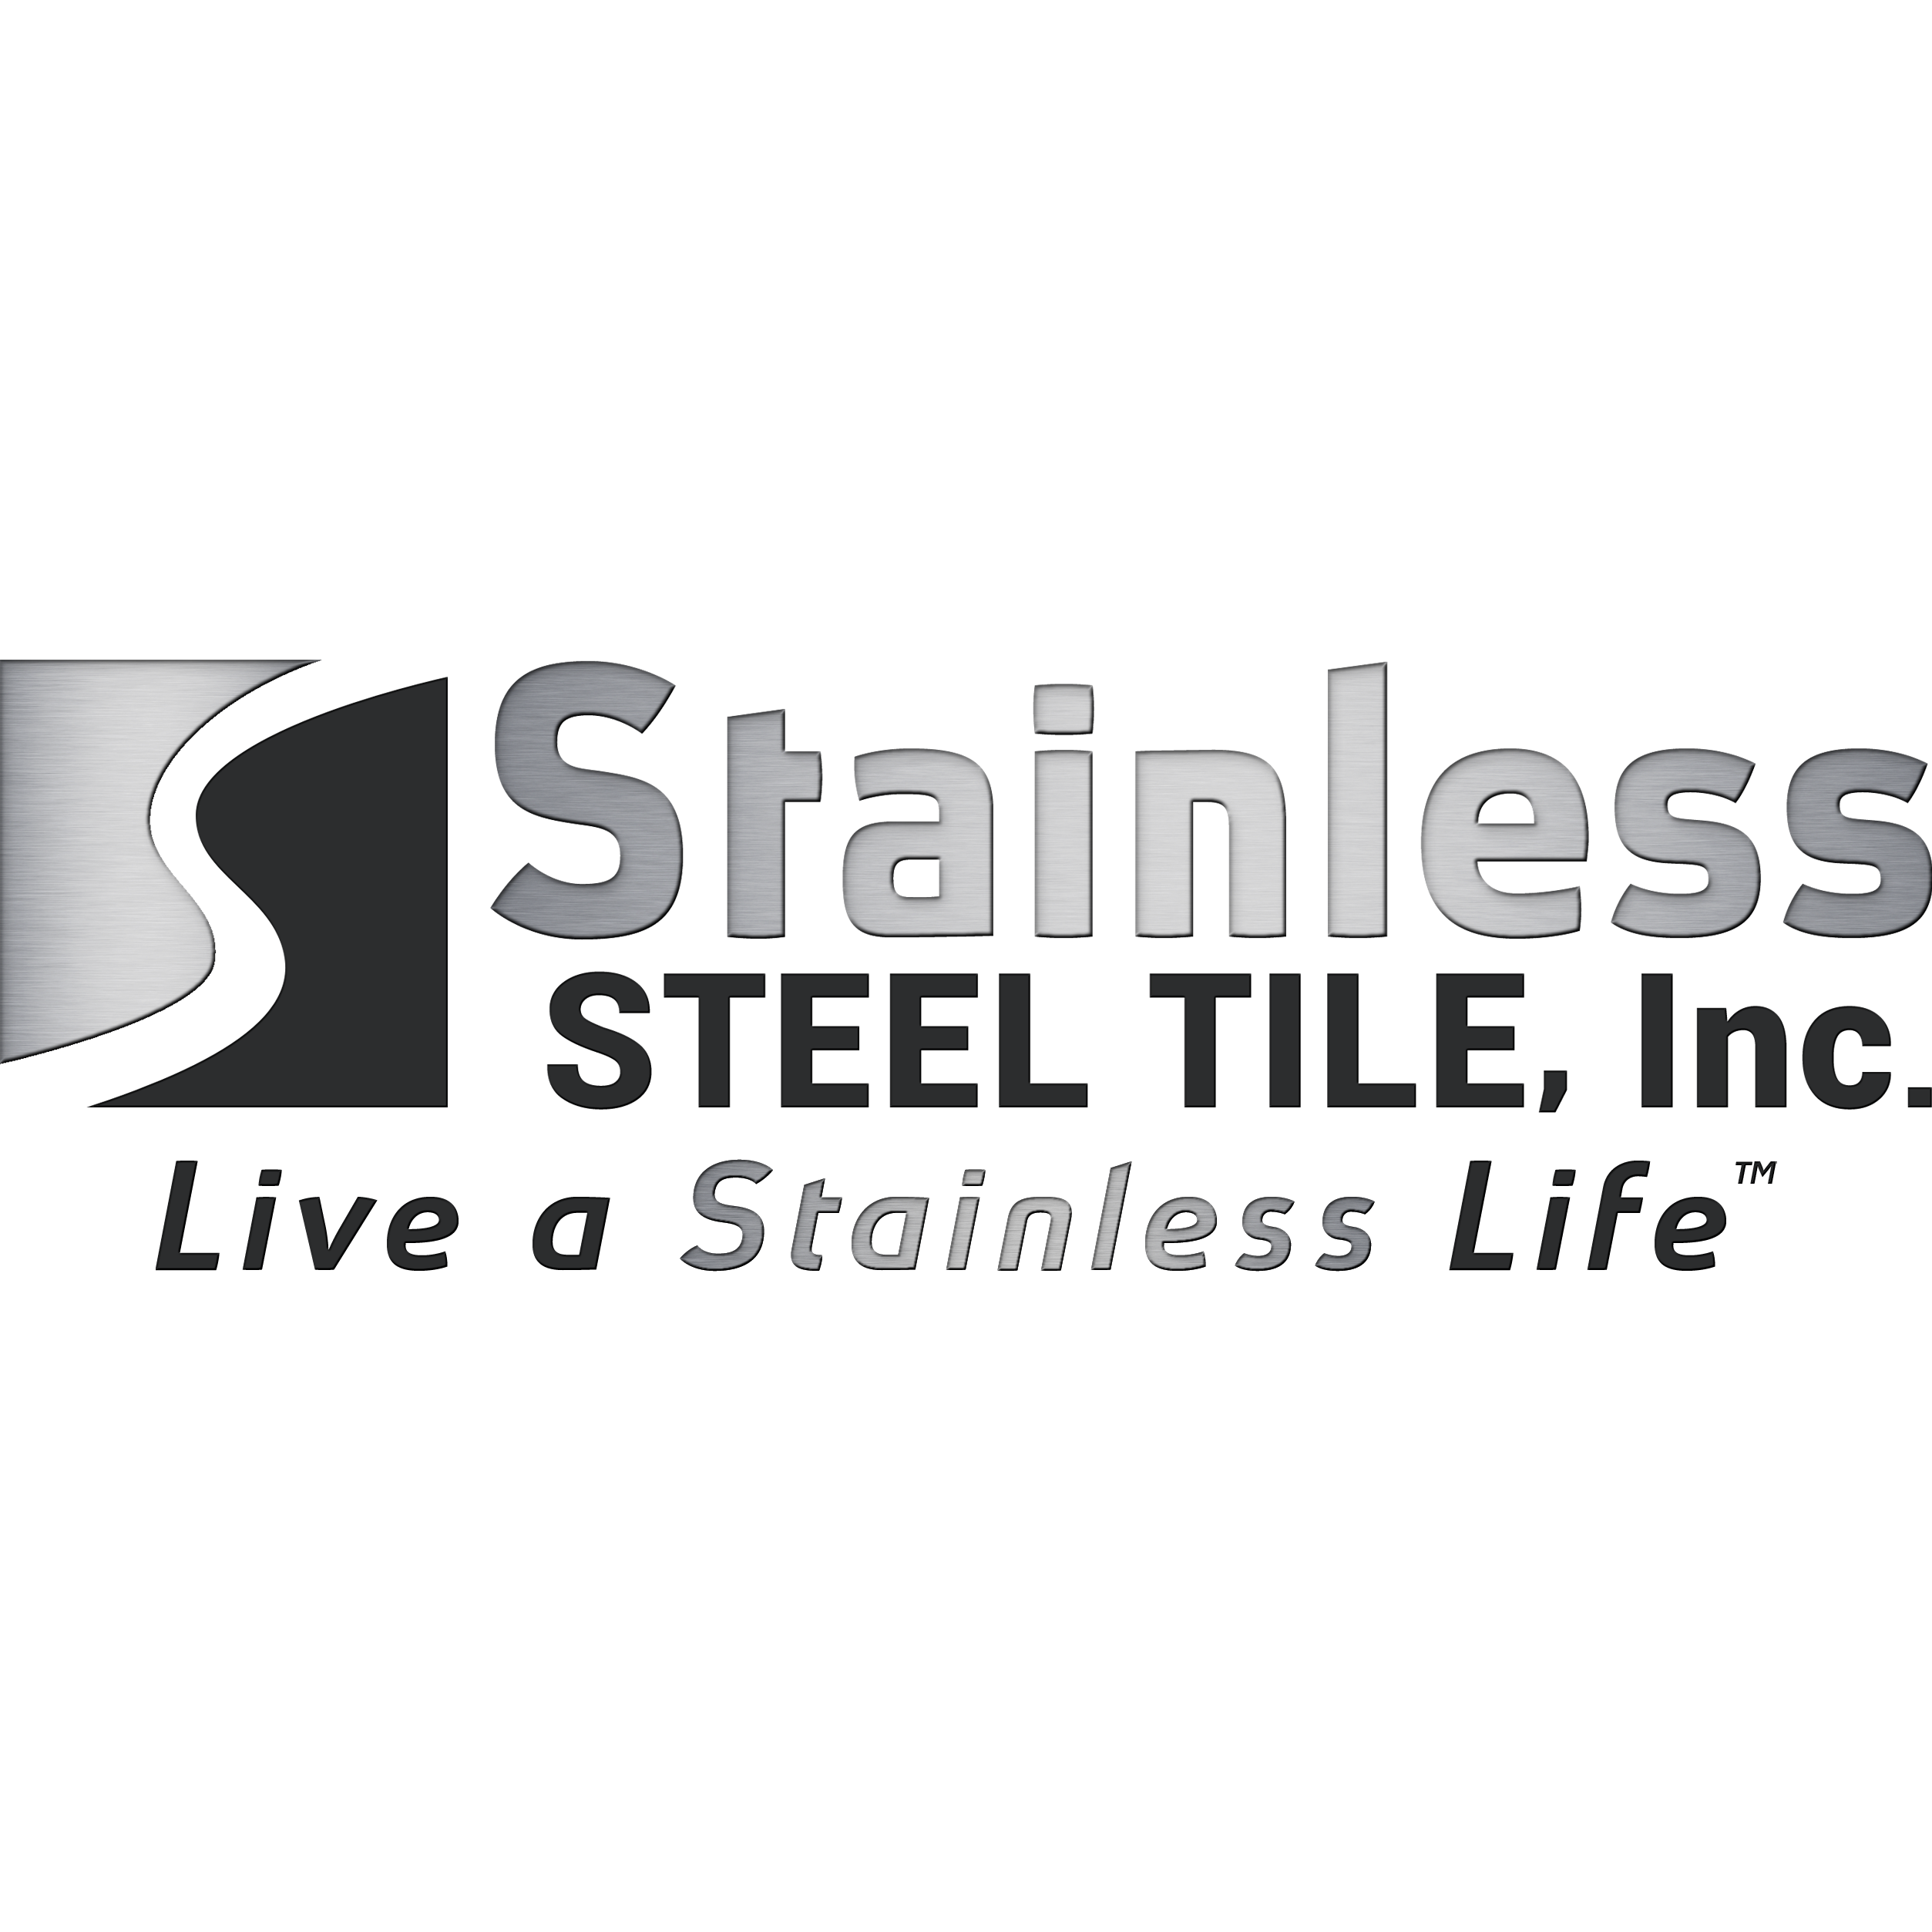 Stainless Steel Tile, Inc.